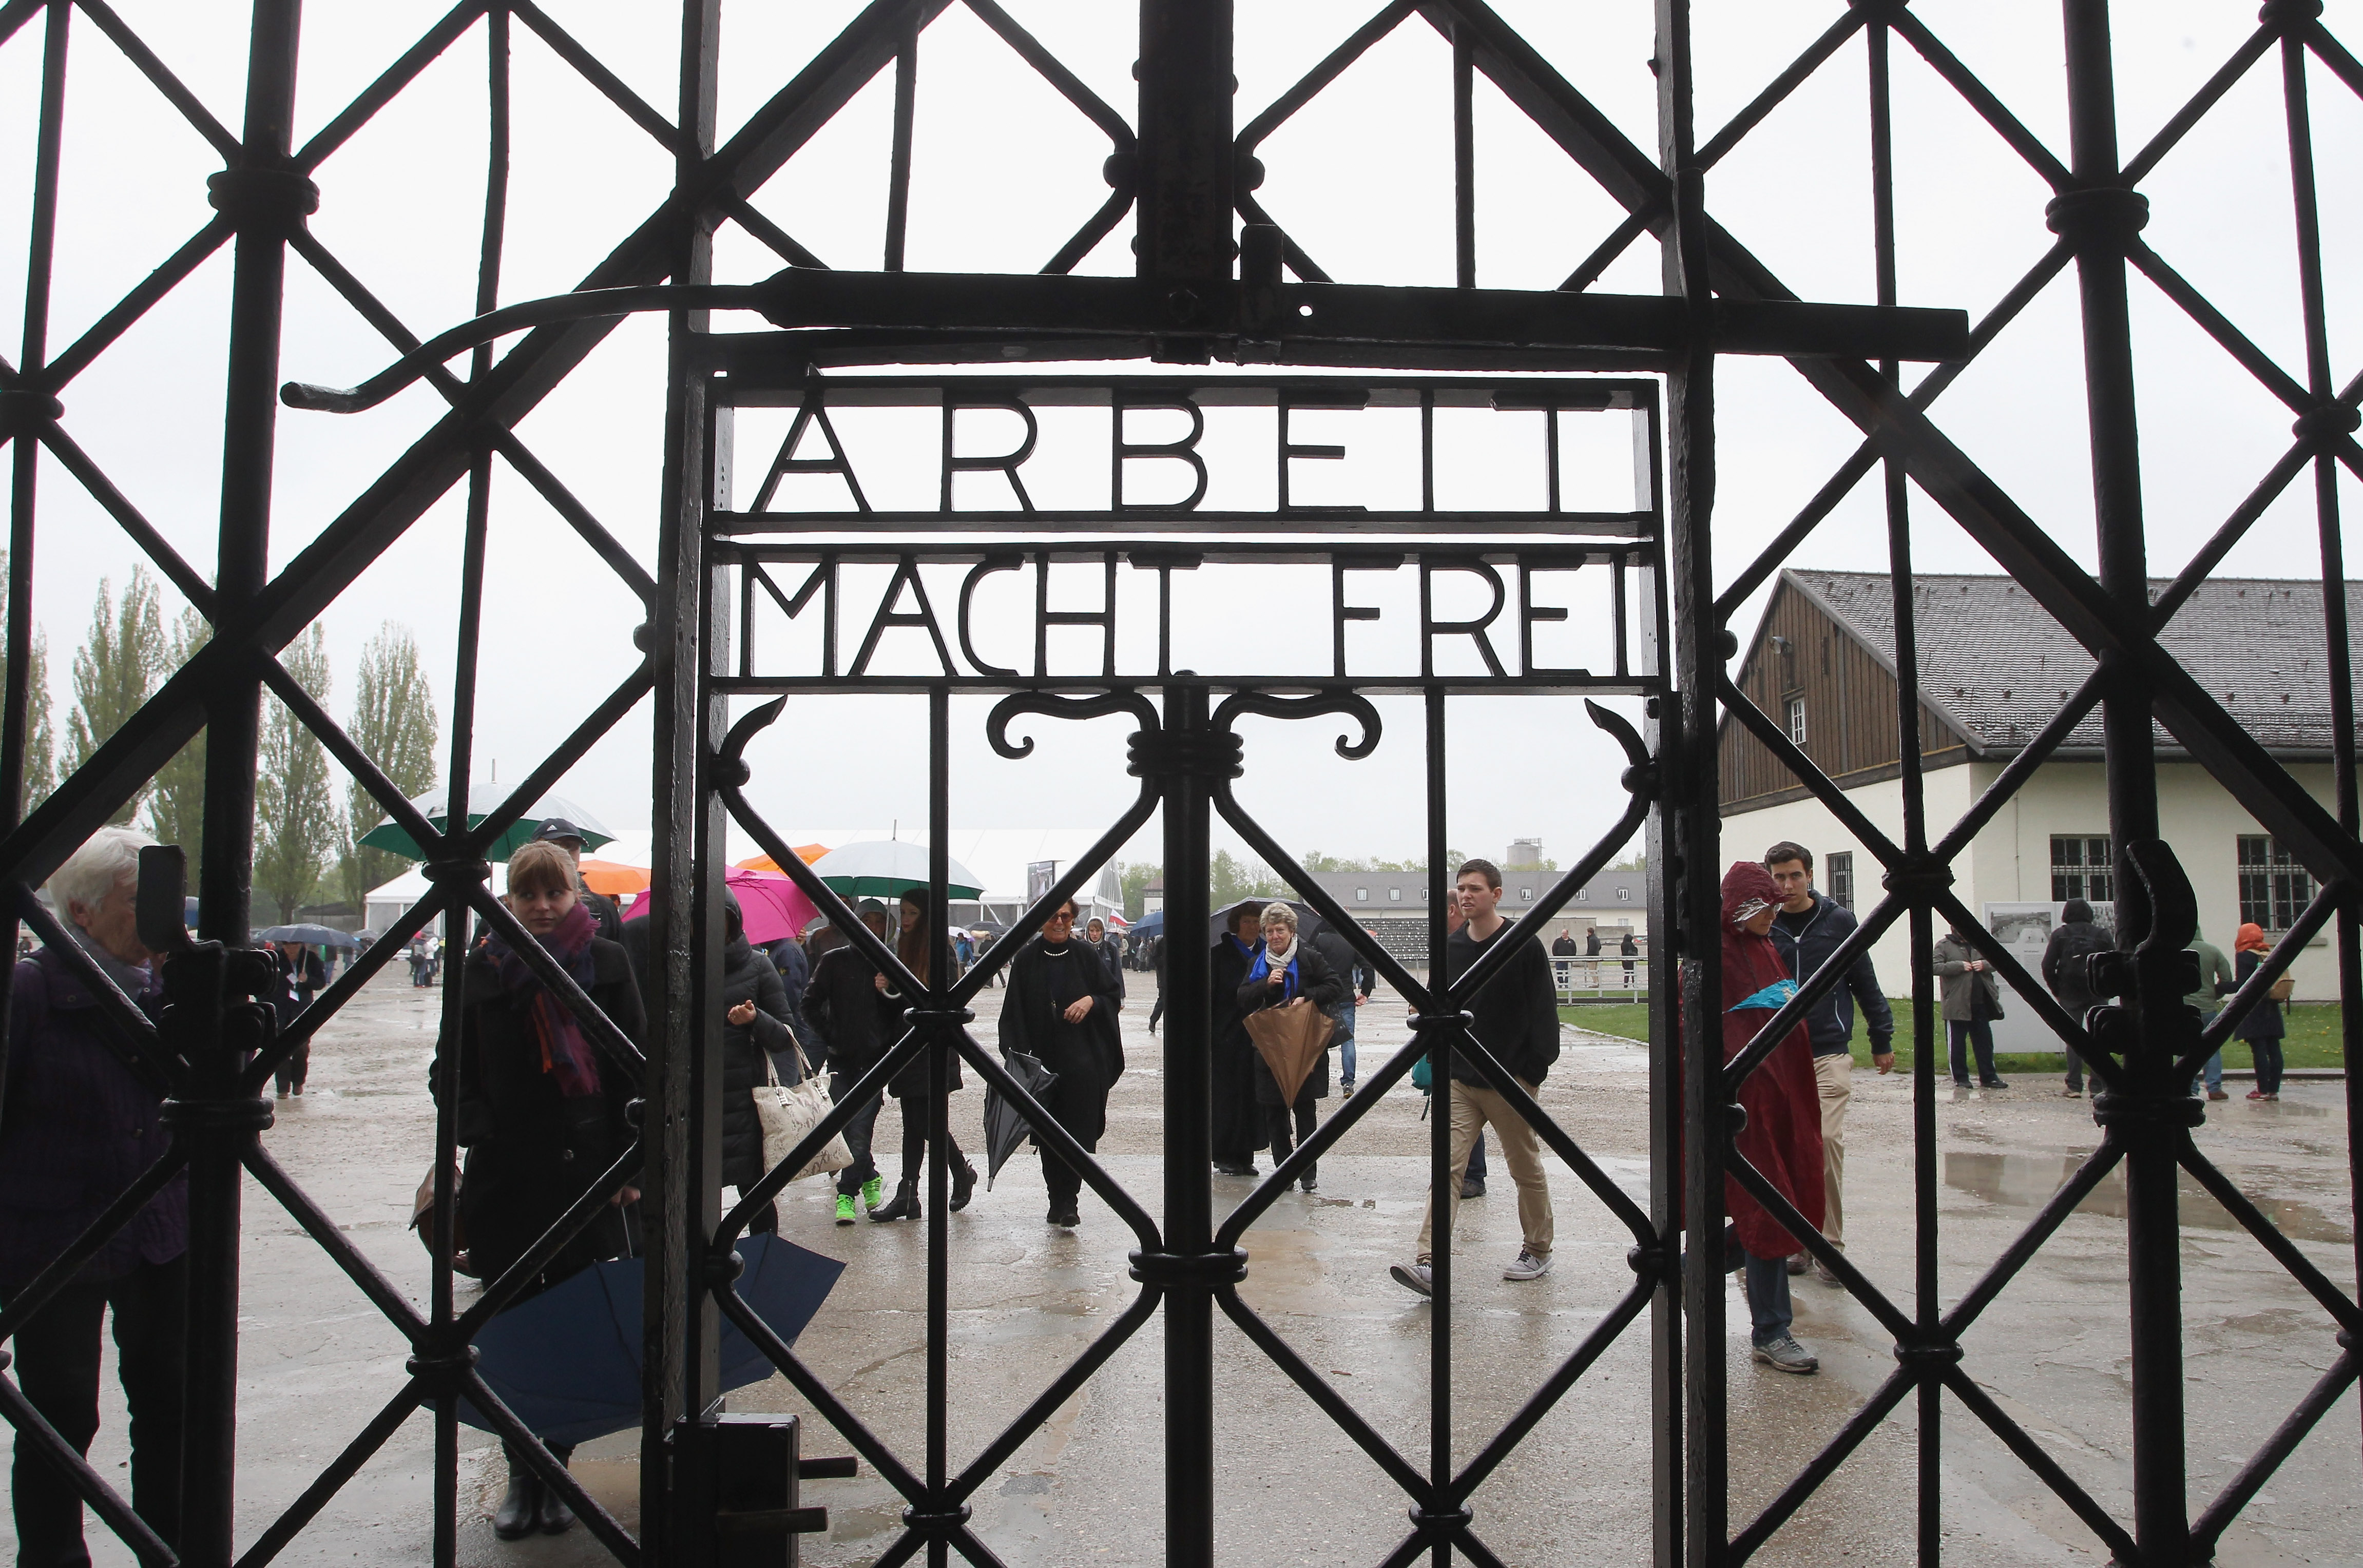 A general view of  entrance gate of the Dachau concentration camp during a ceremony to commemorate the 70th anniversary of the liberation at the memorial site on the grounds of the former concentration camp on May 3, 2015 in Dachau, Germany.